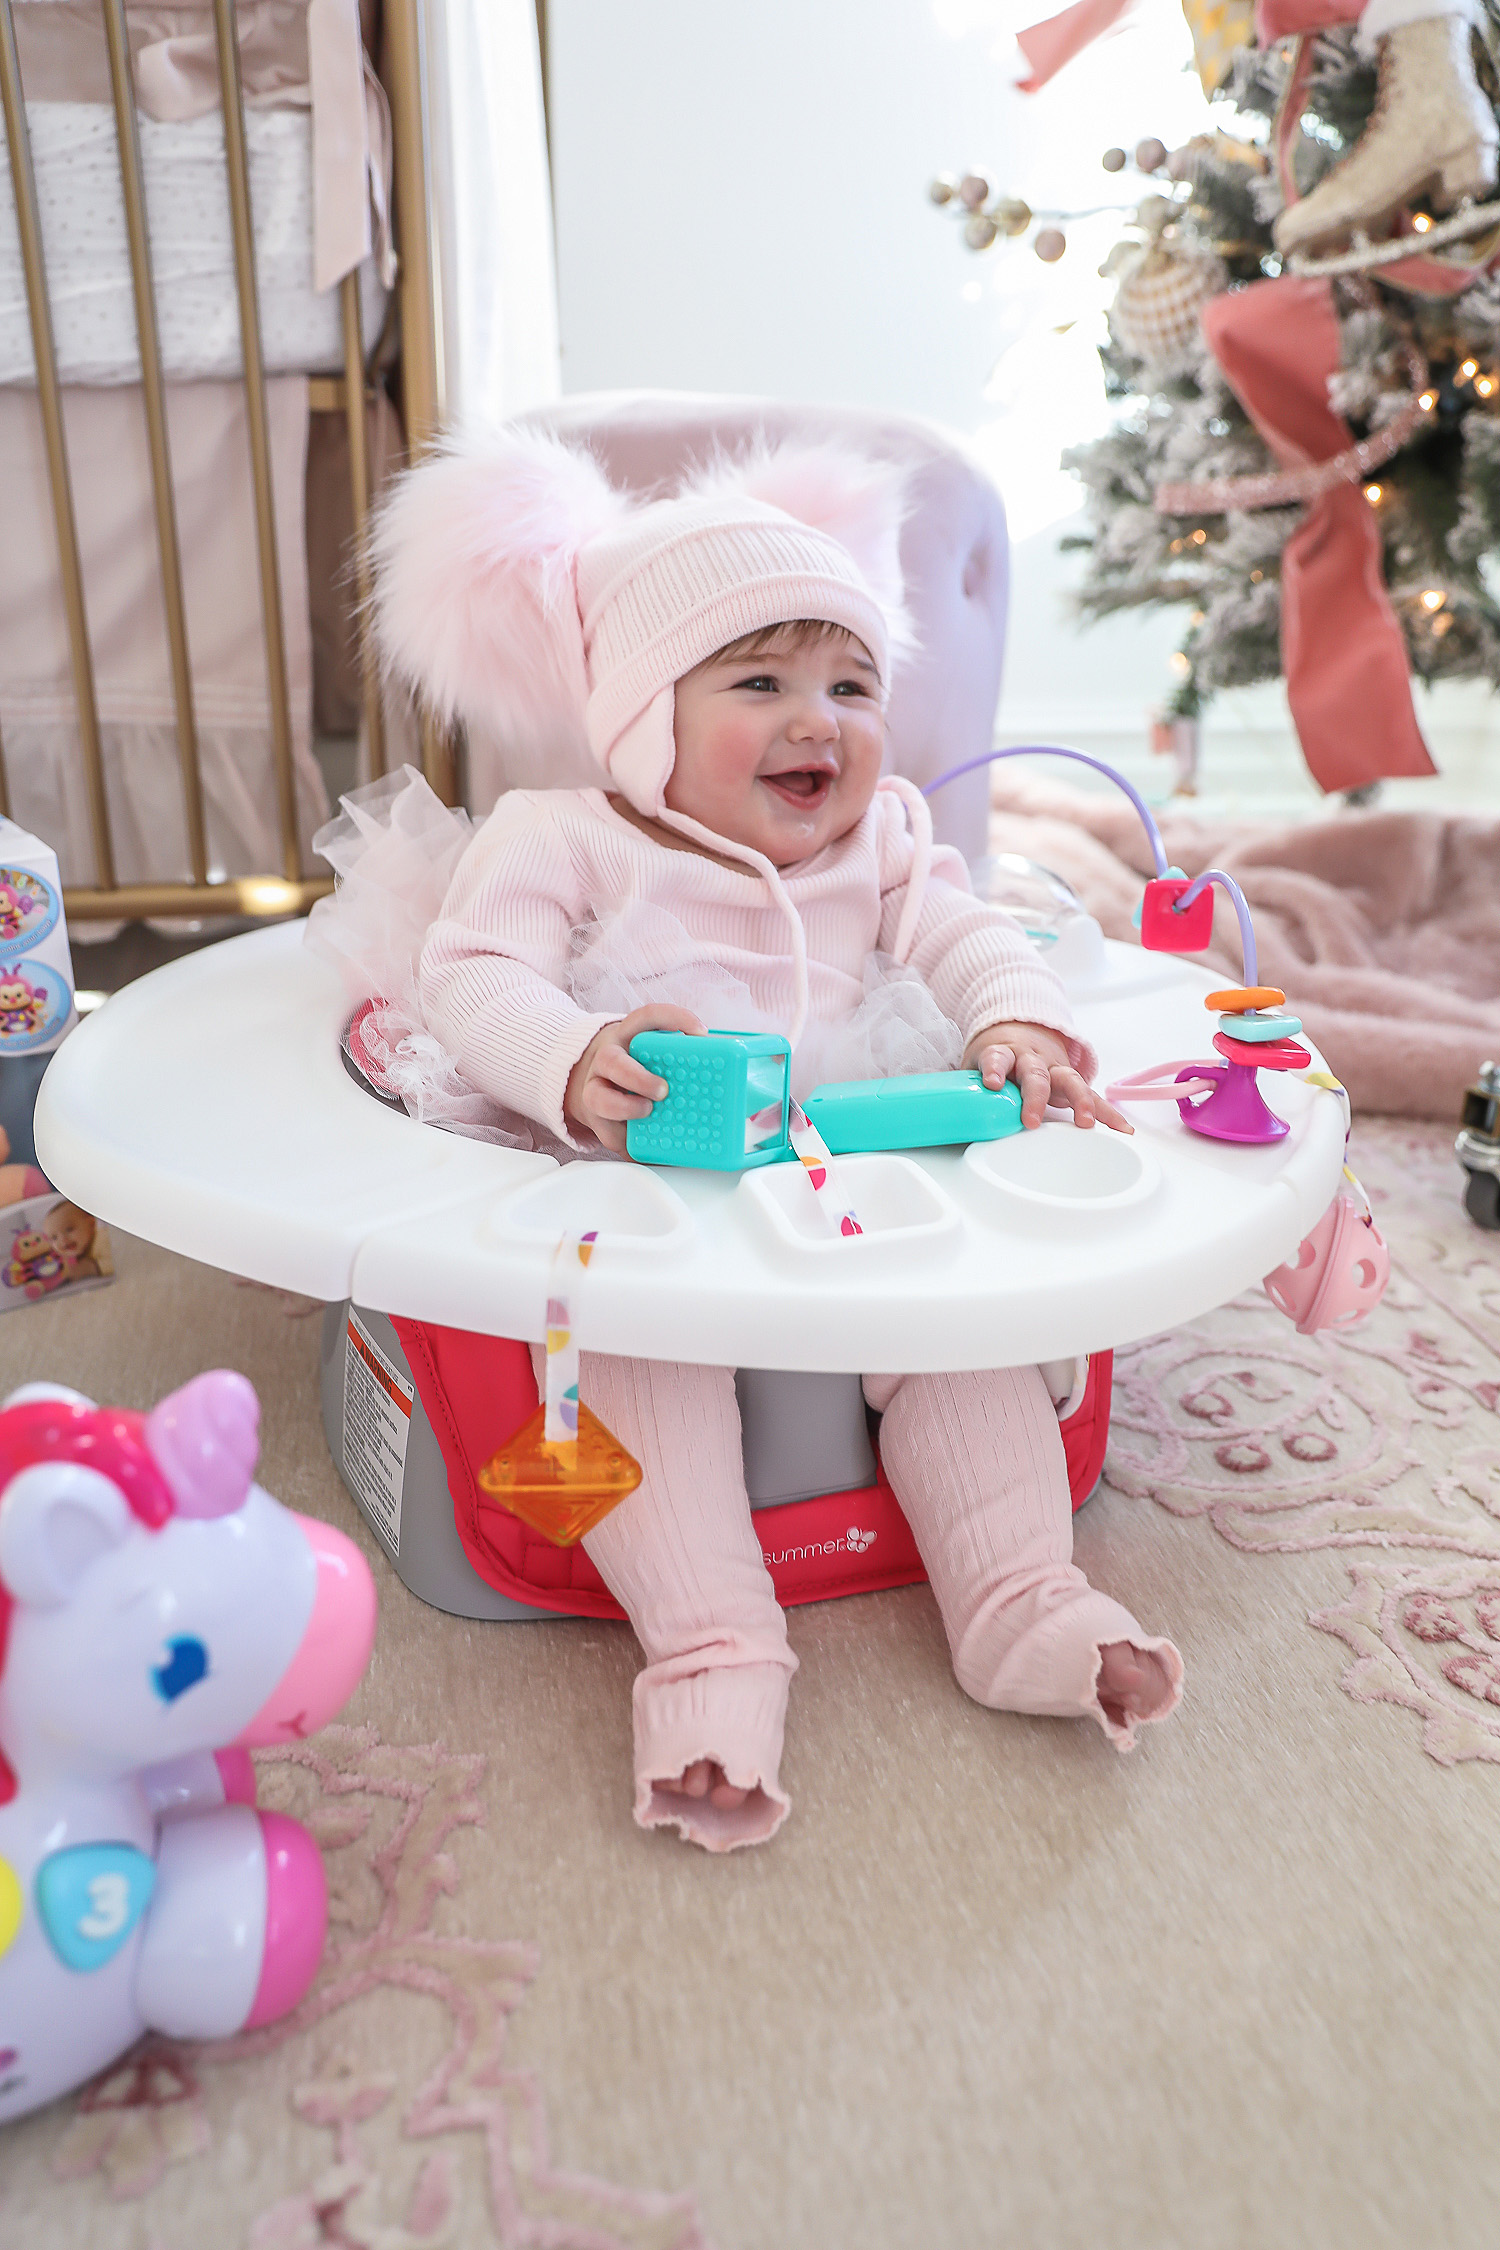 Affordable baby gifs featured by top US life and style blogger, Emily Gemma of The Sweetest Thing. baby girl gift guide 2019 christmas 6 month old, baby girl fashion blogger, baby girl fashionista